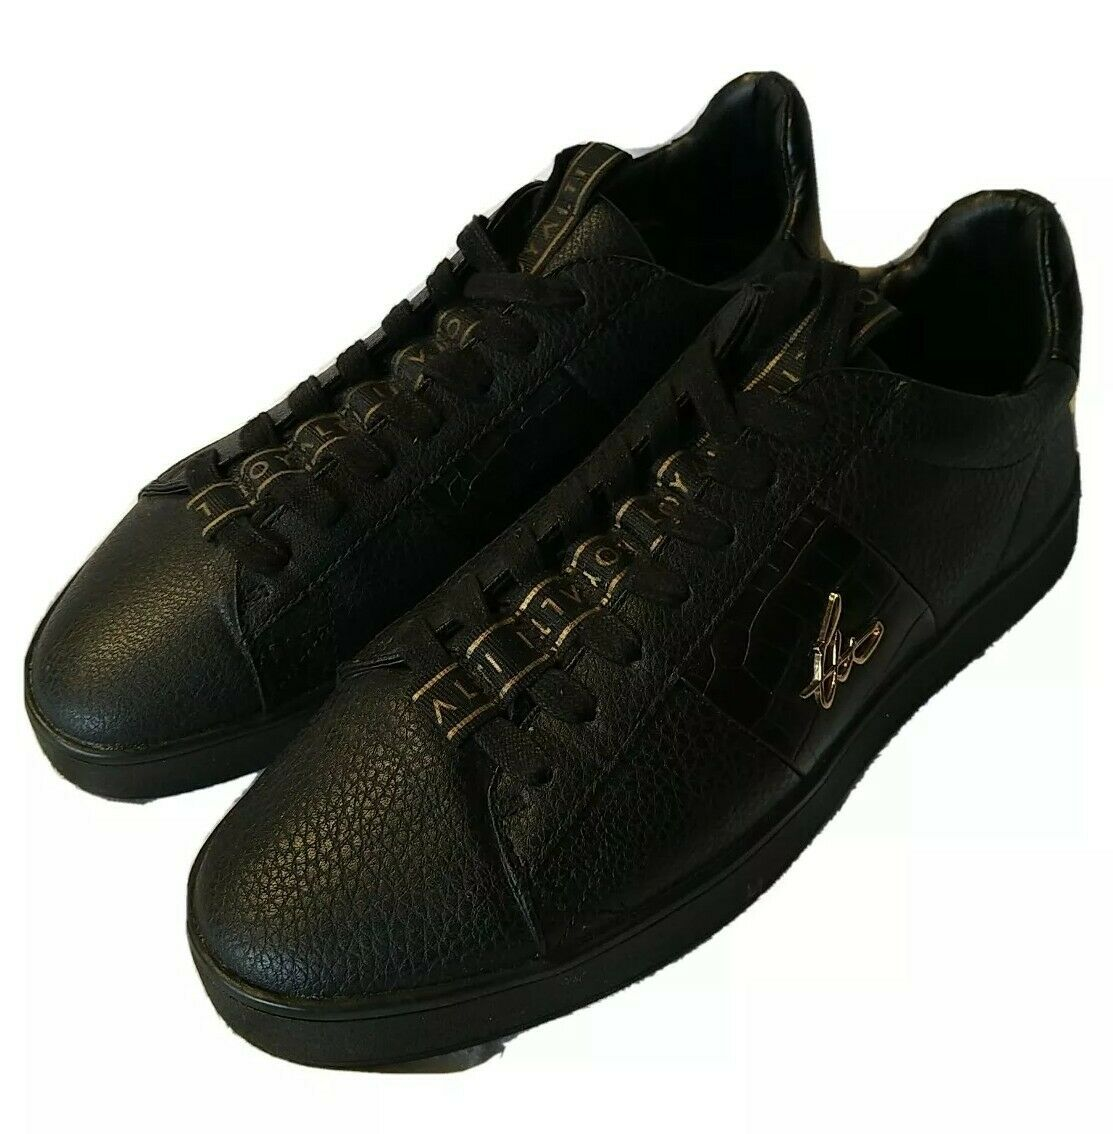 Loyalti trainers black With Gold Size 6 Unisex